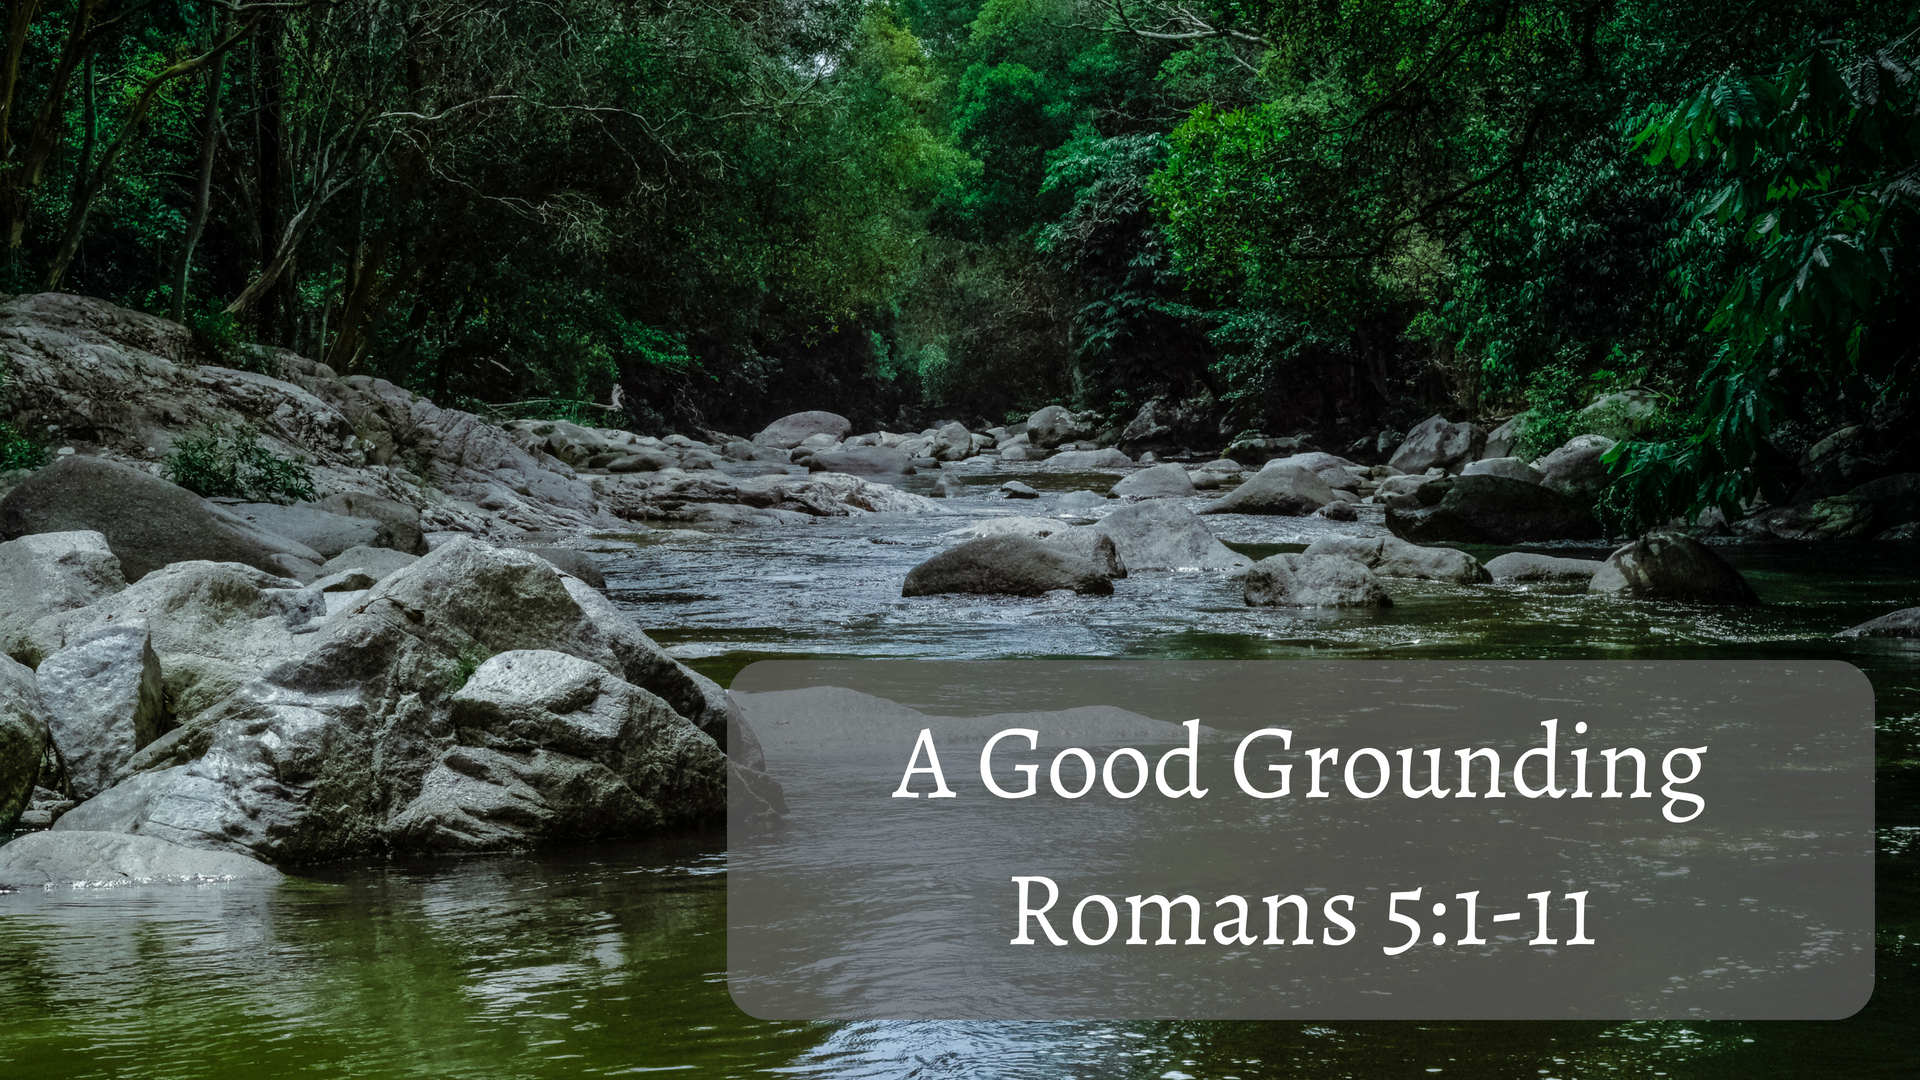 A Good Grounding